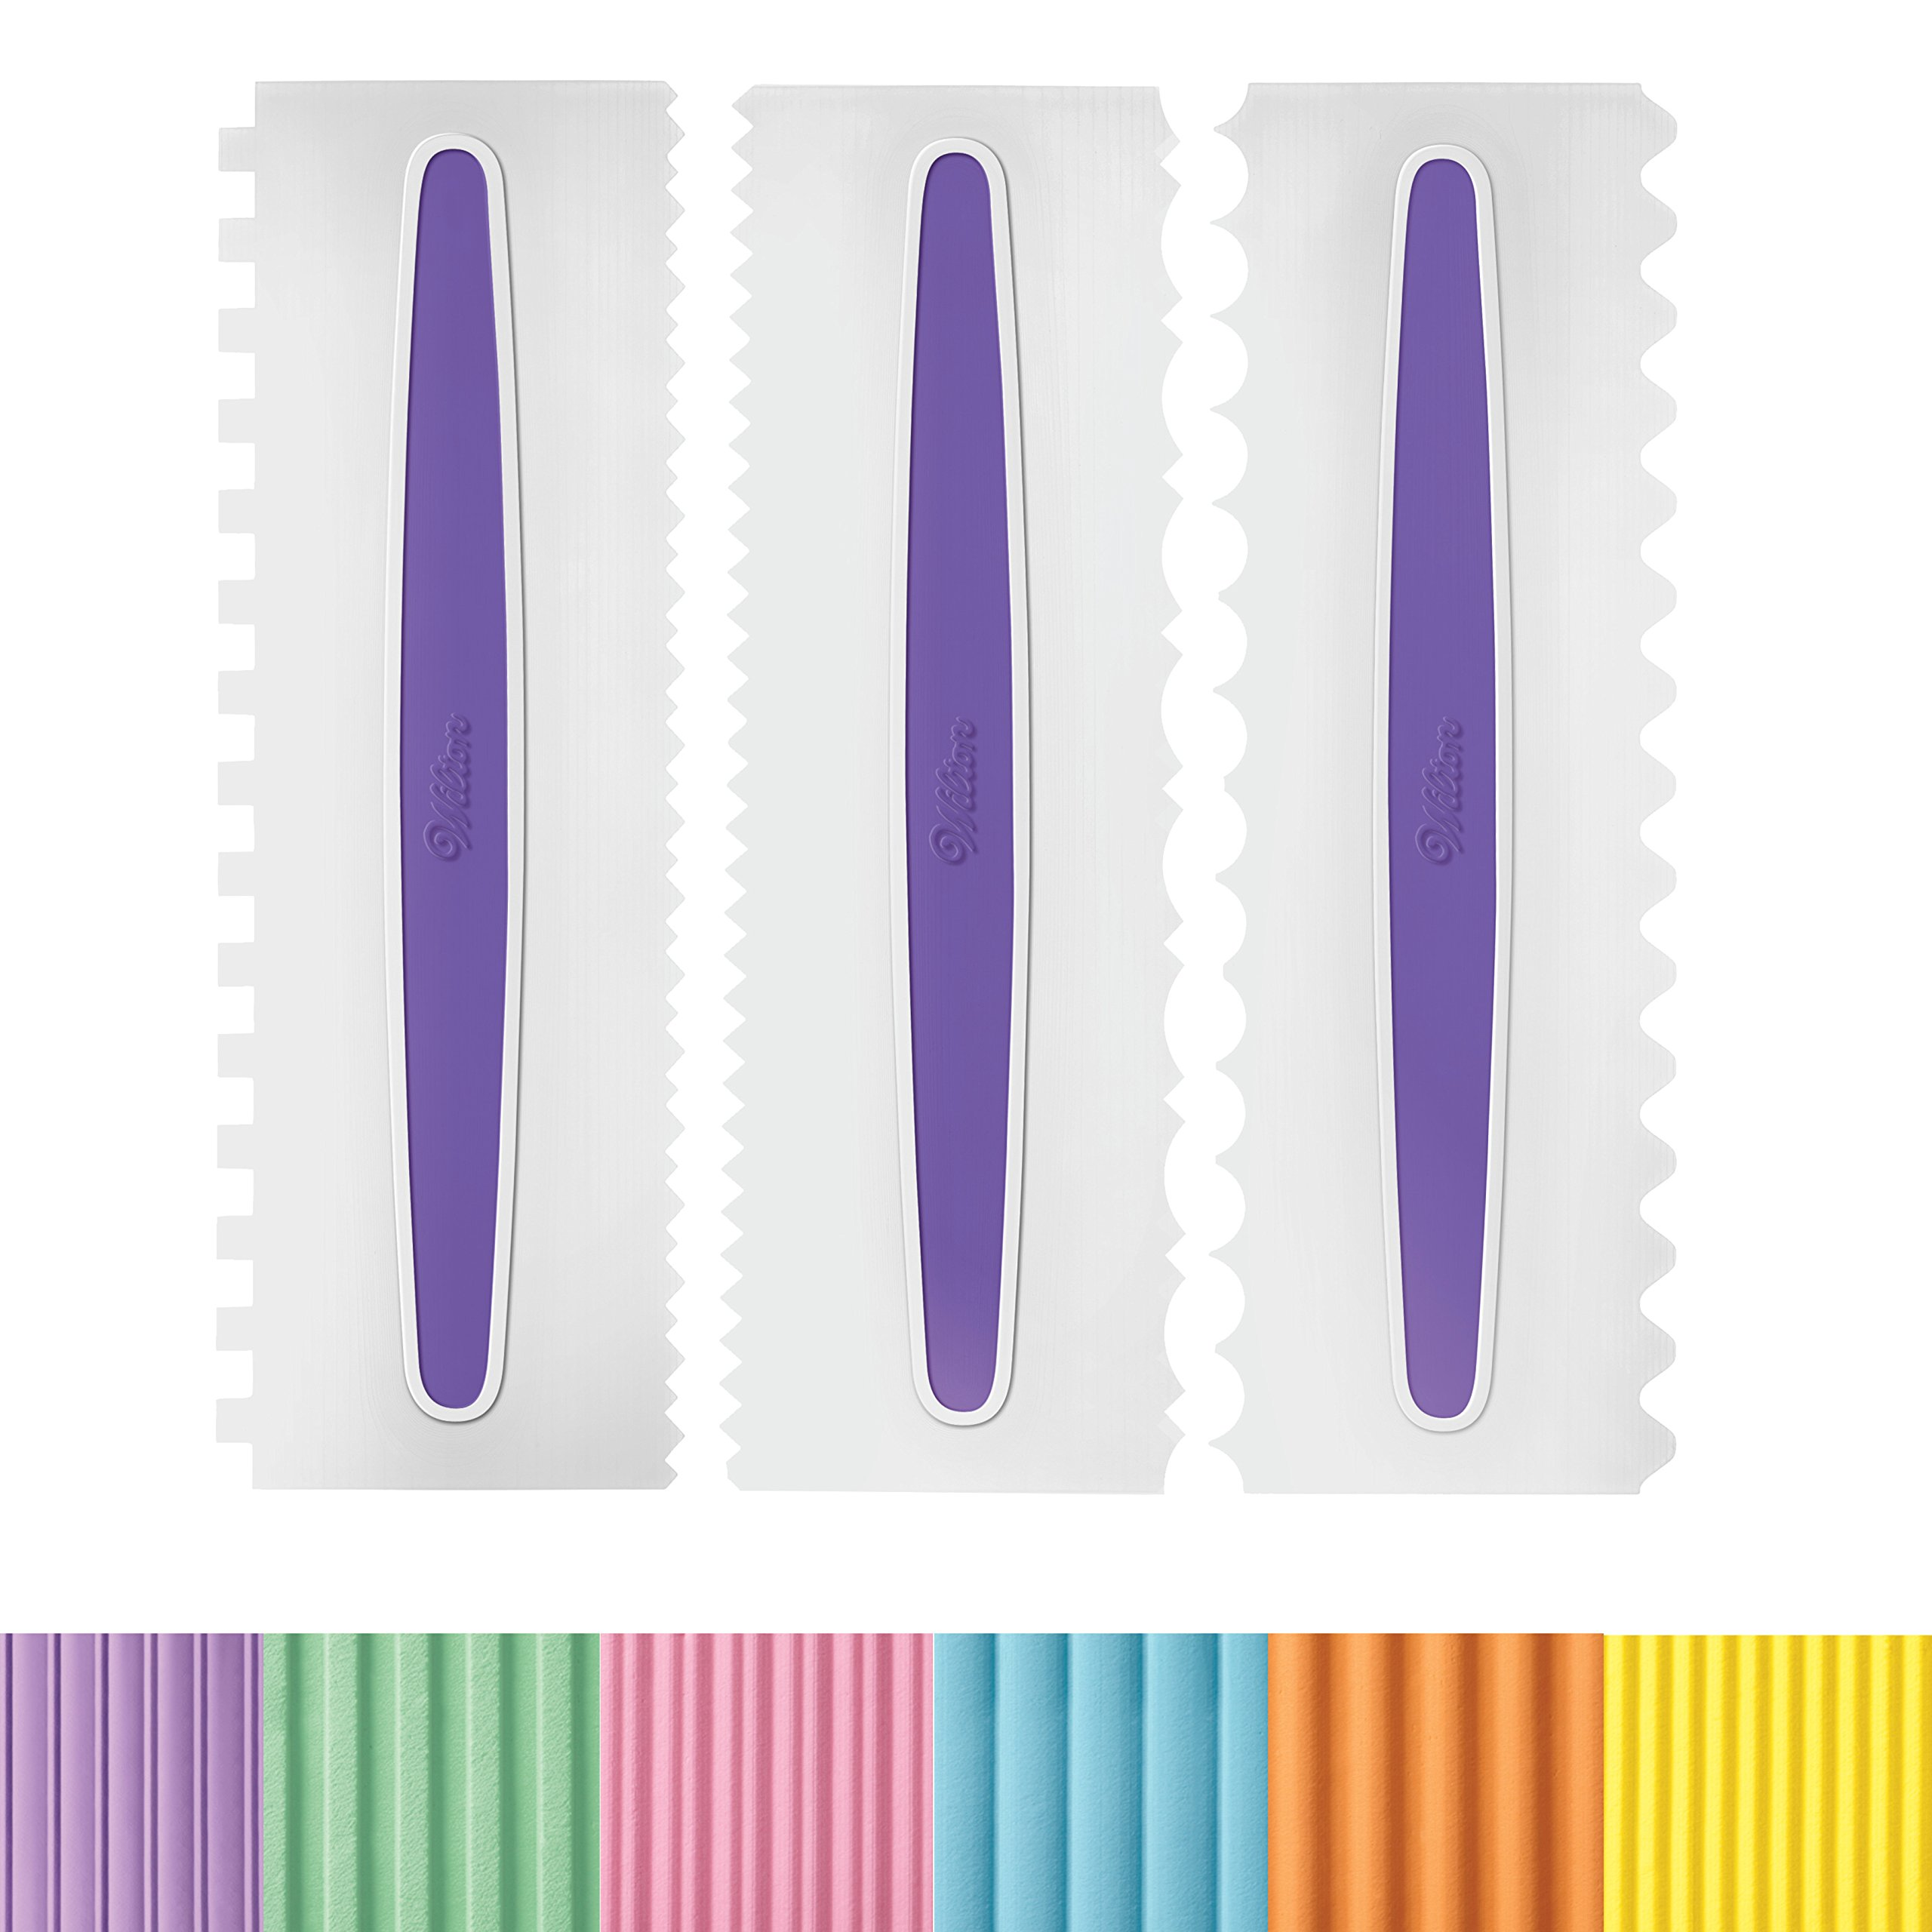 Wilton 417-1154 Icing Smoother Comb Set-3 Piece, White/Purple by Wilton